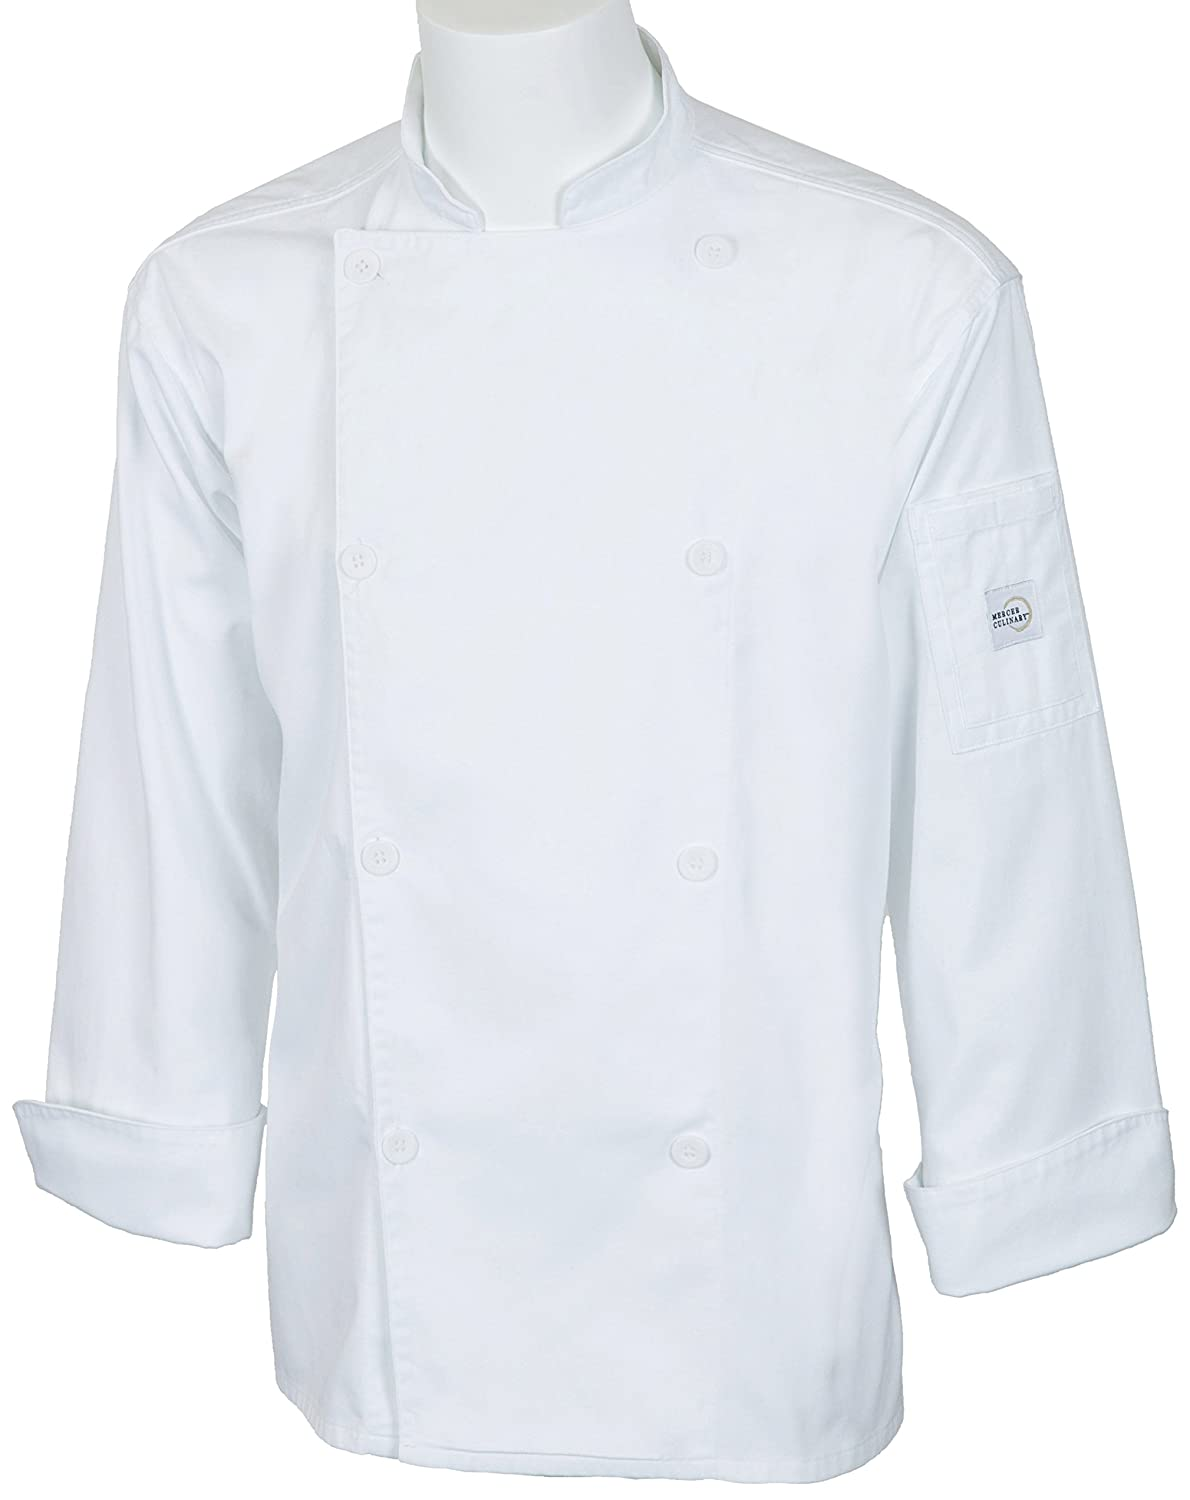 Mercer Culinary M61010WHXS Genesis Unisex Jacket with Mercer Logo Buttons, X-Small, White